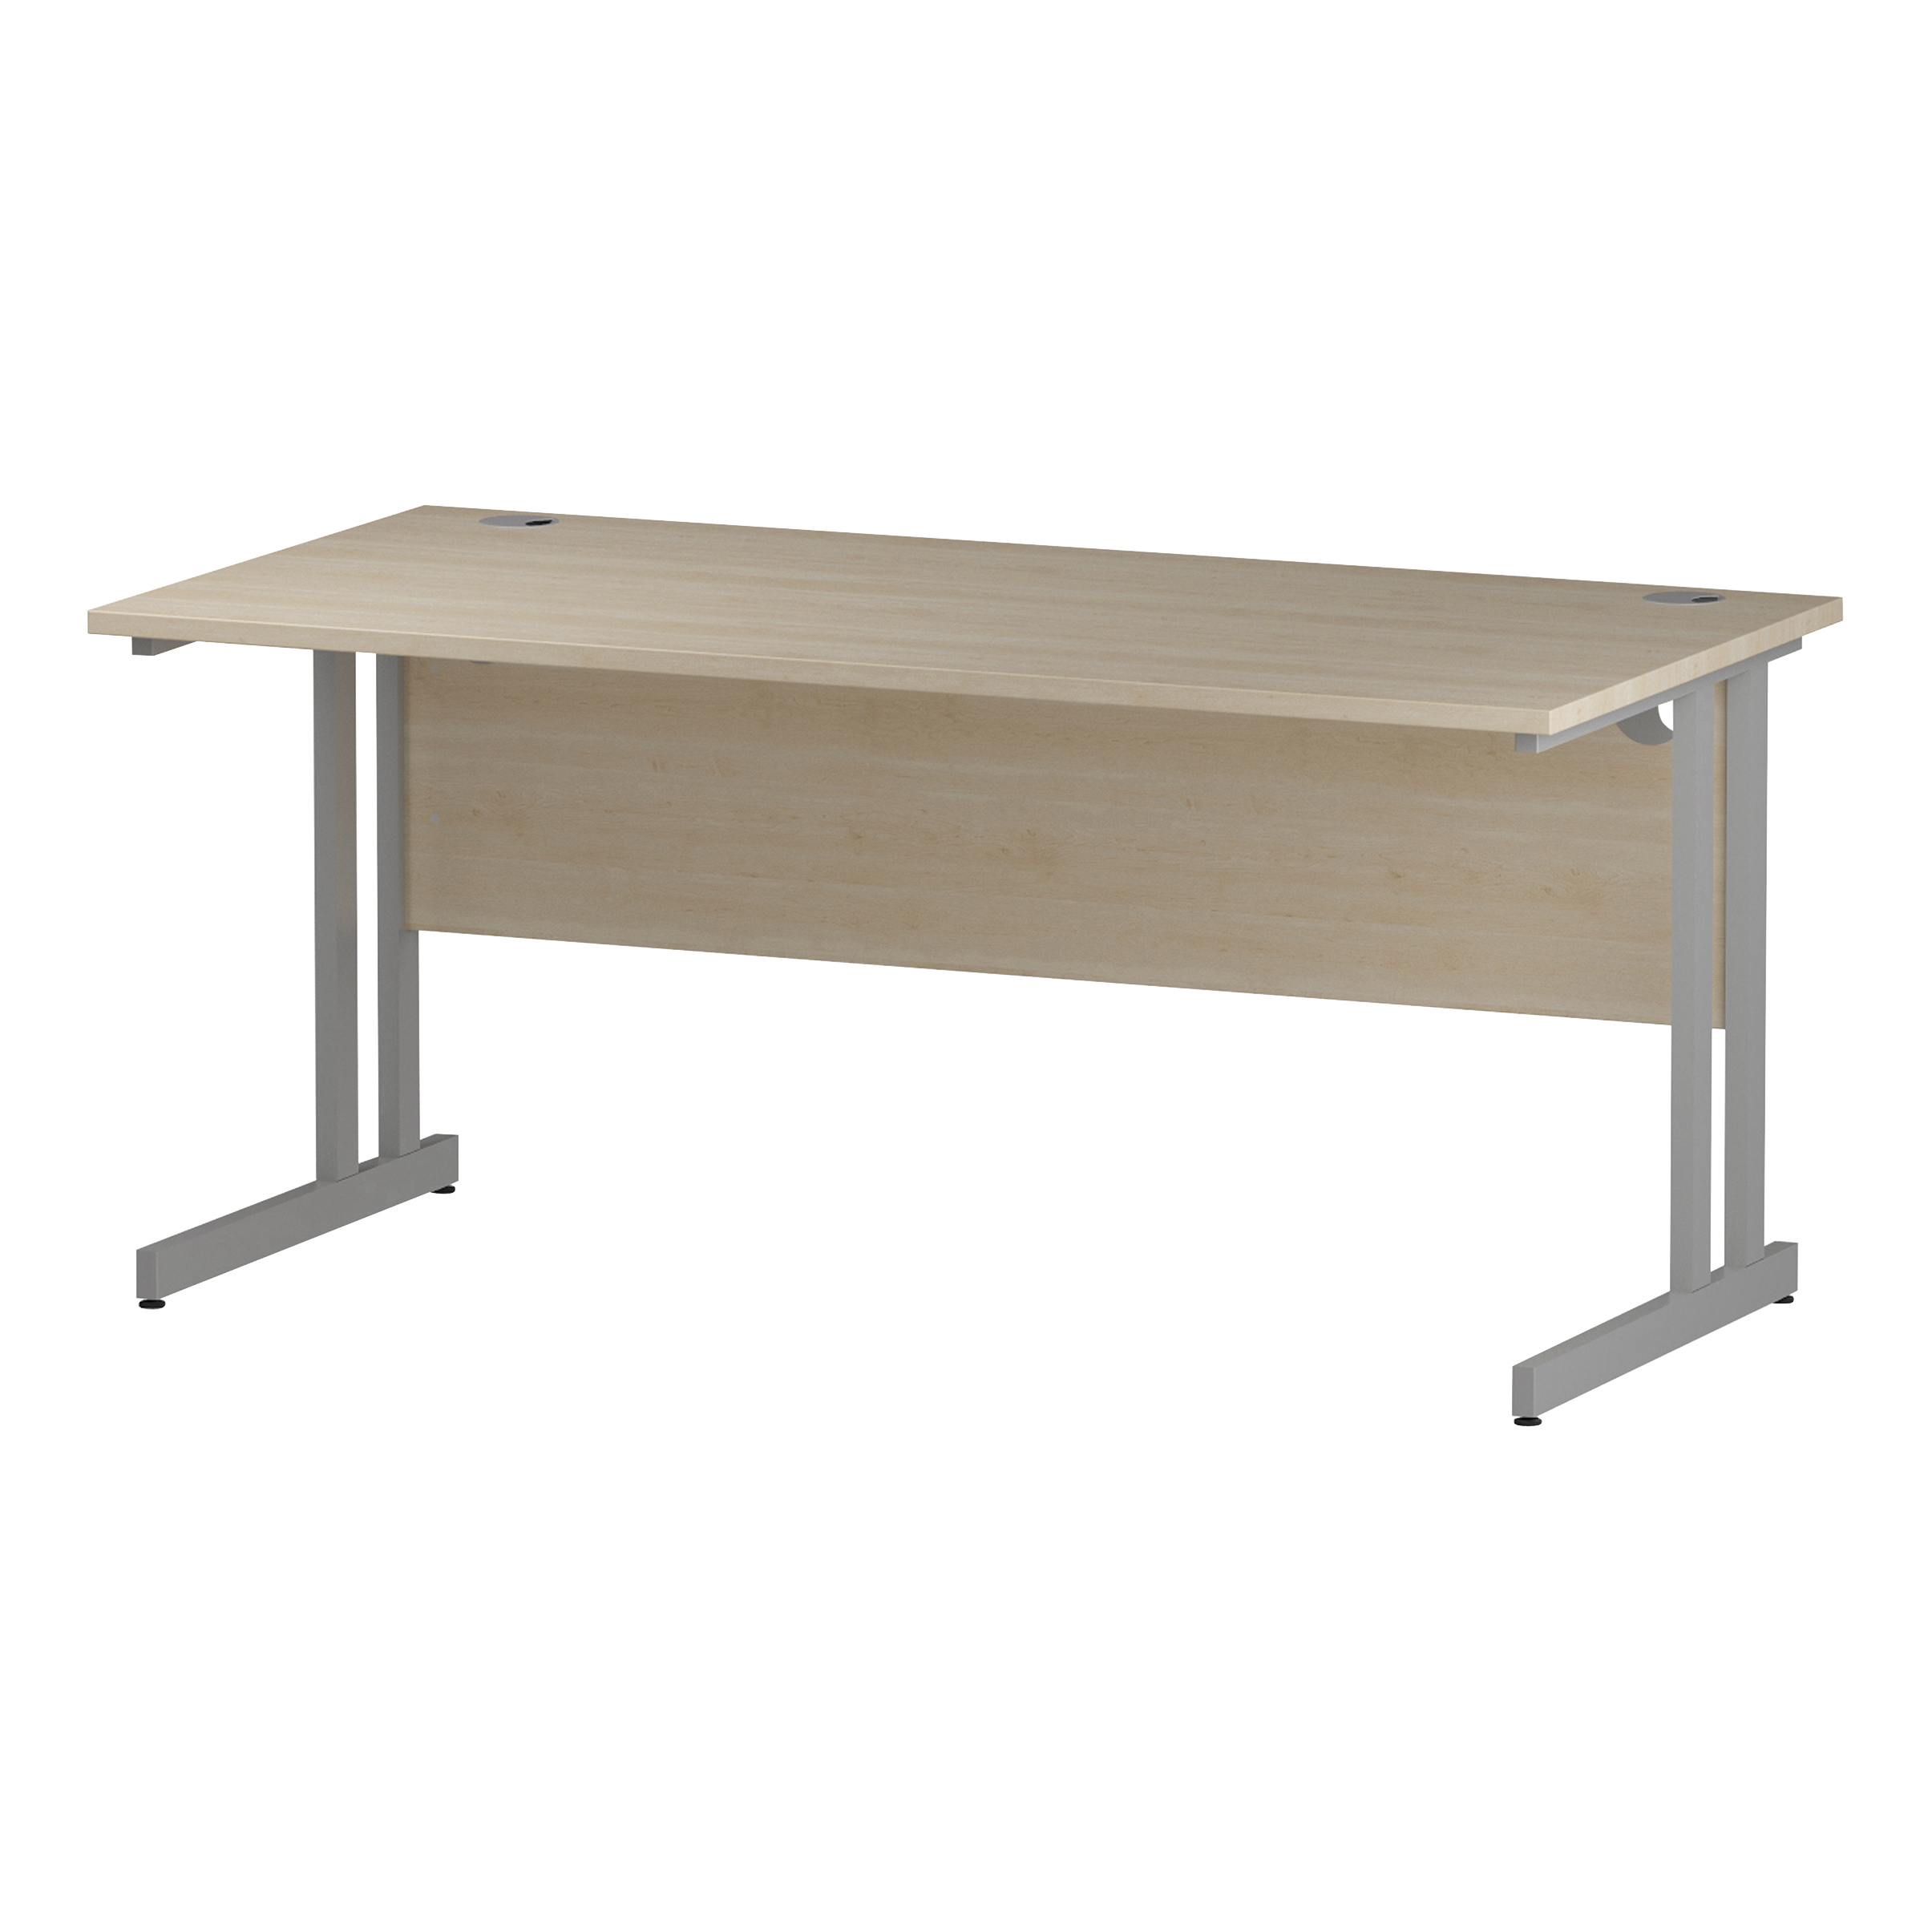 Trexus Rectangular Desk Silver Cantilever Leg 1600x800mm Maple Ref I000351